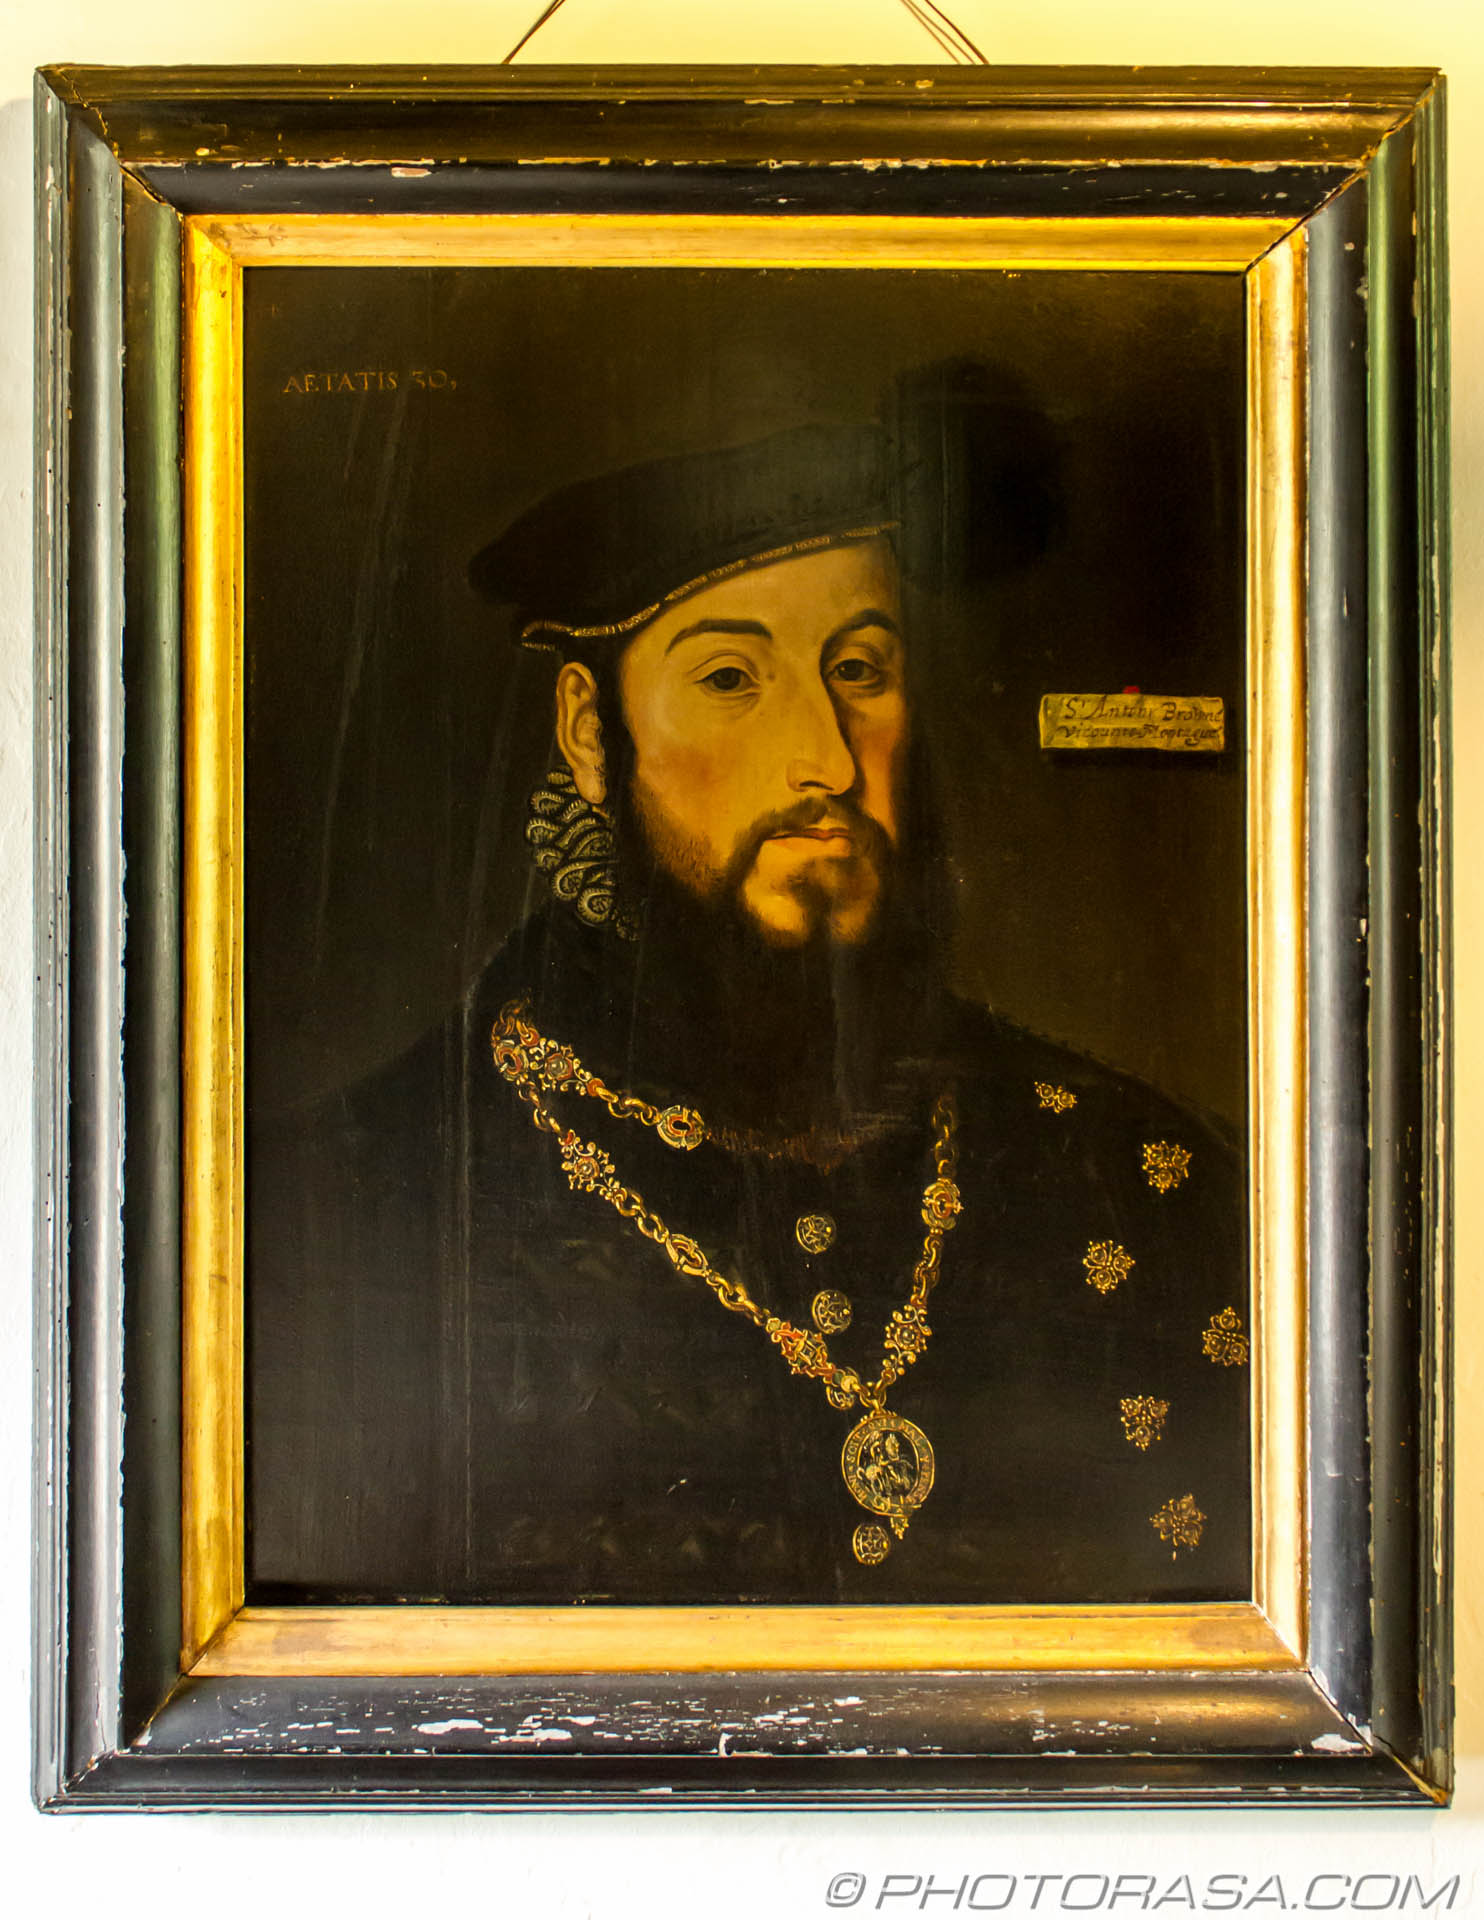 http://photorasa.com/stoneacre-house-paintings/tudor-painting-of-anthony-browne-1st-viscount-montague/